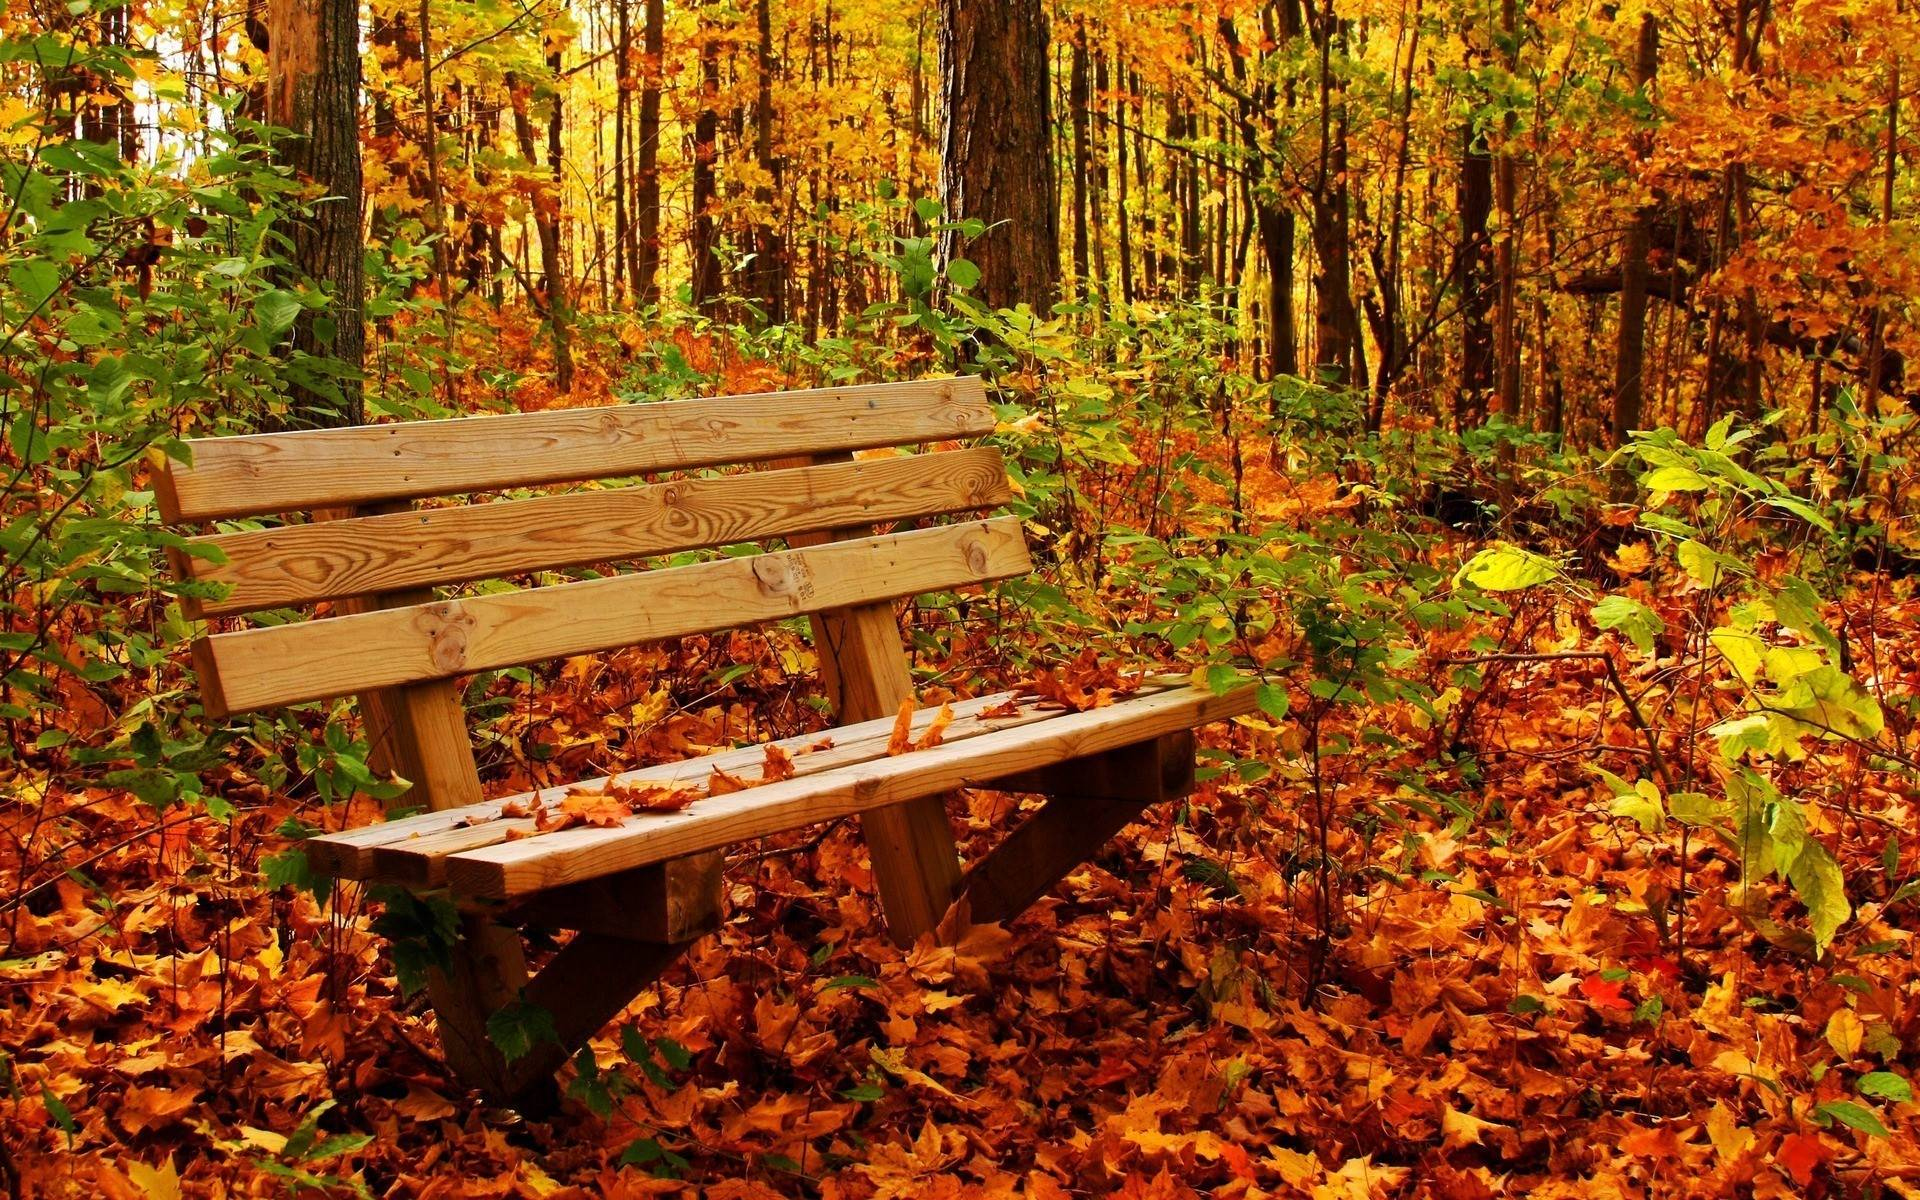 Autumn Nature Wallpaper Hd Desktop 9 HD Wallpapers